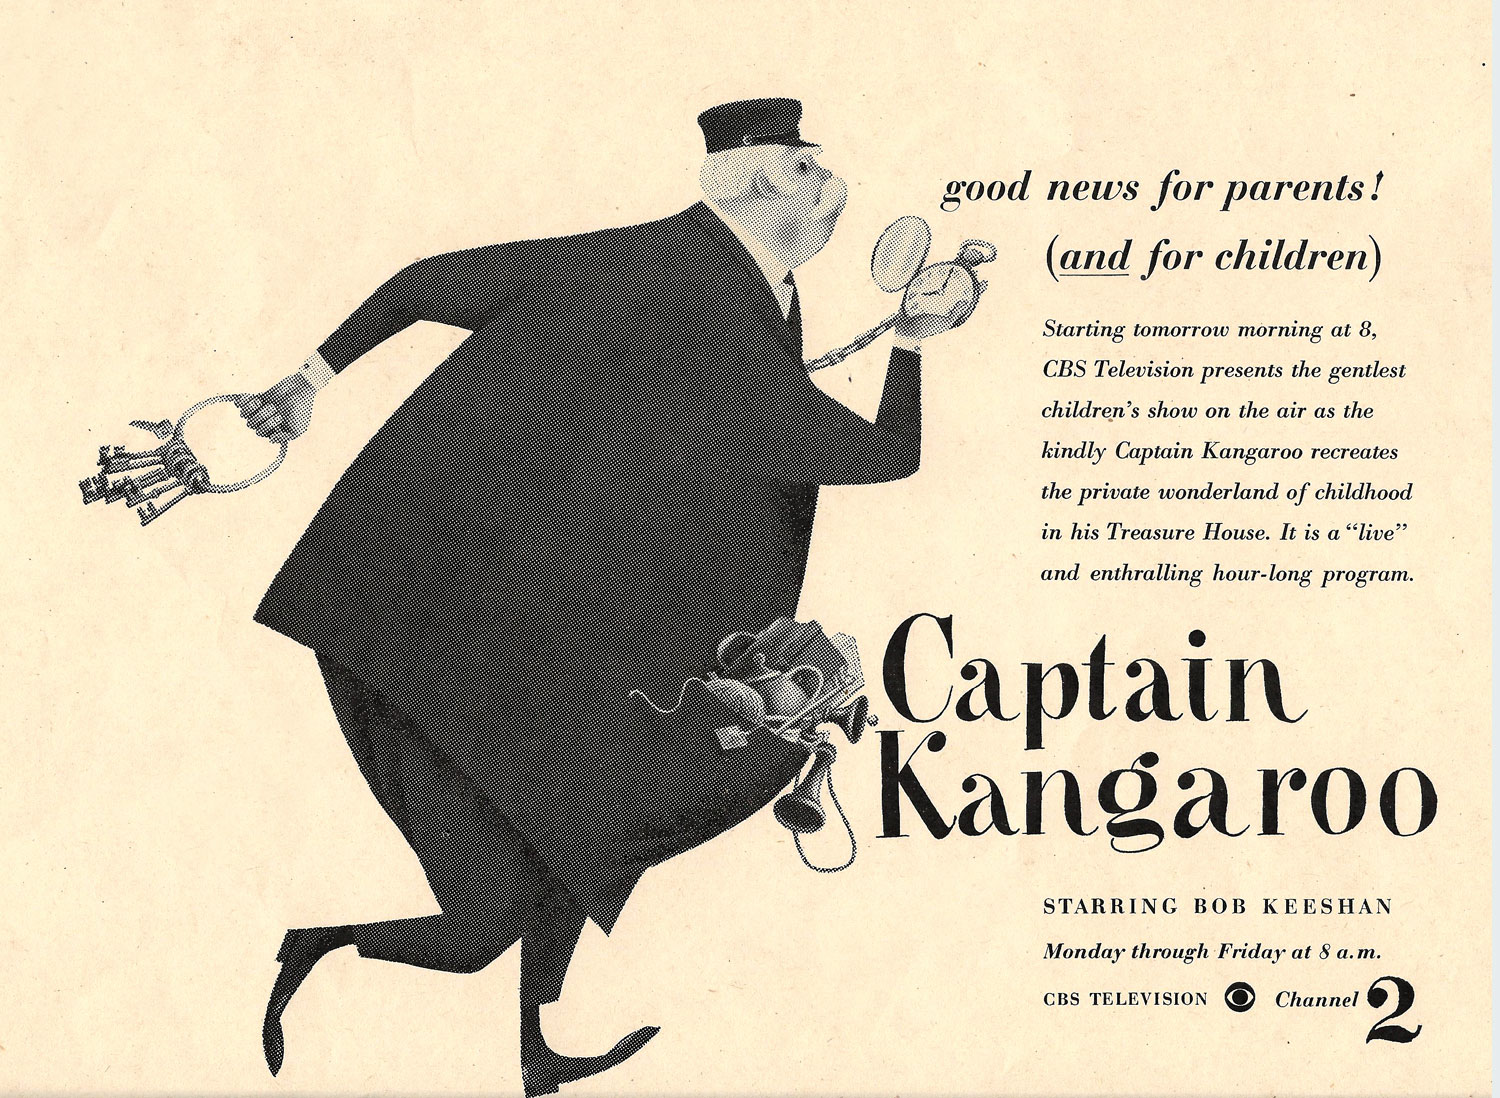 Captain Kangaroo, Oct 2, 1955